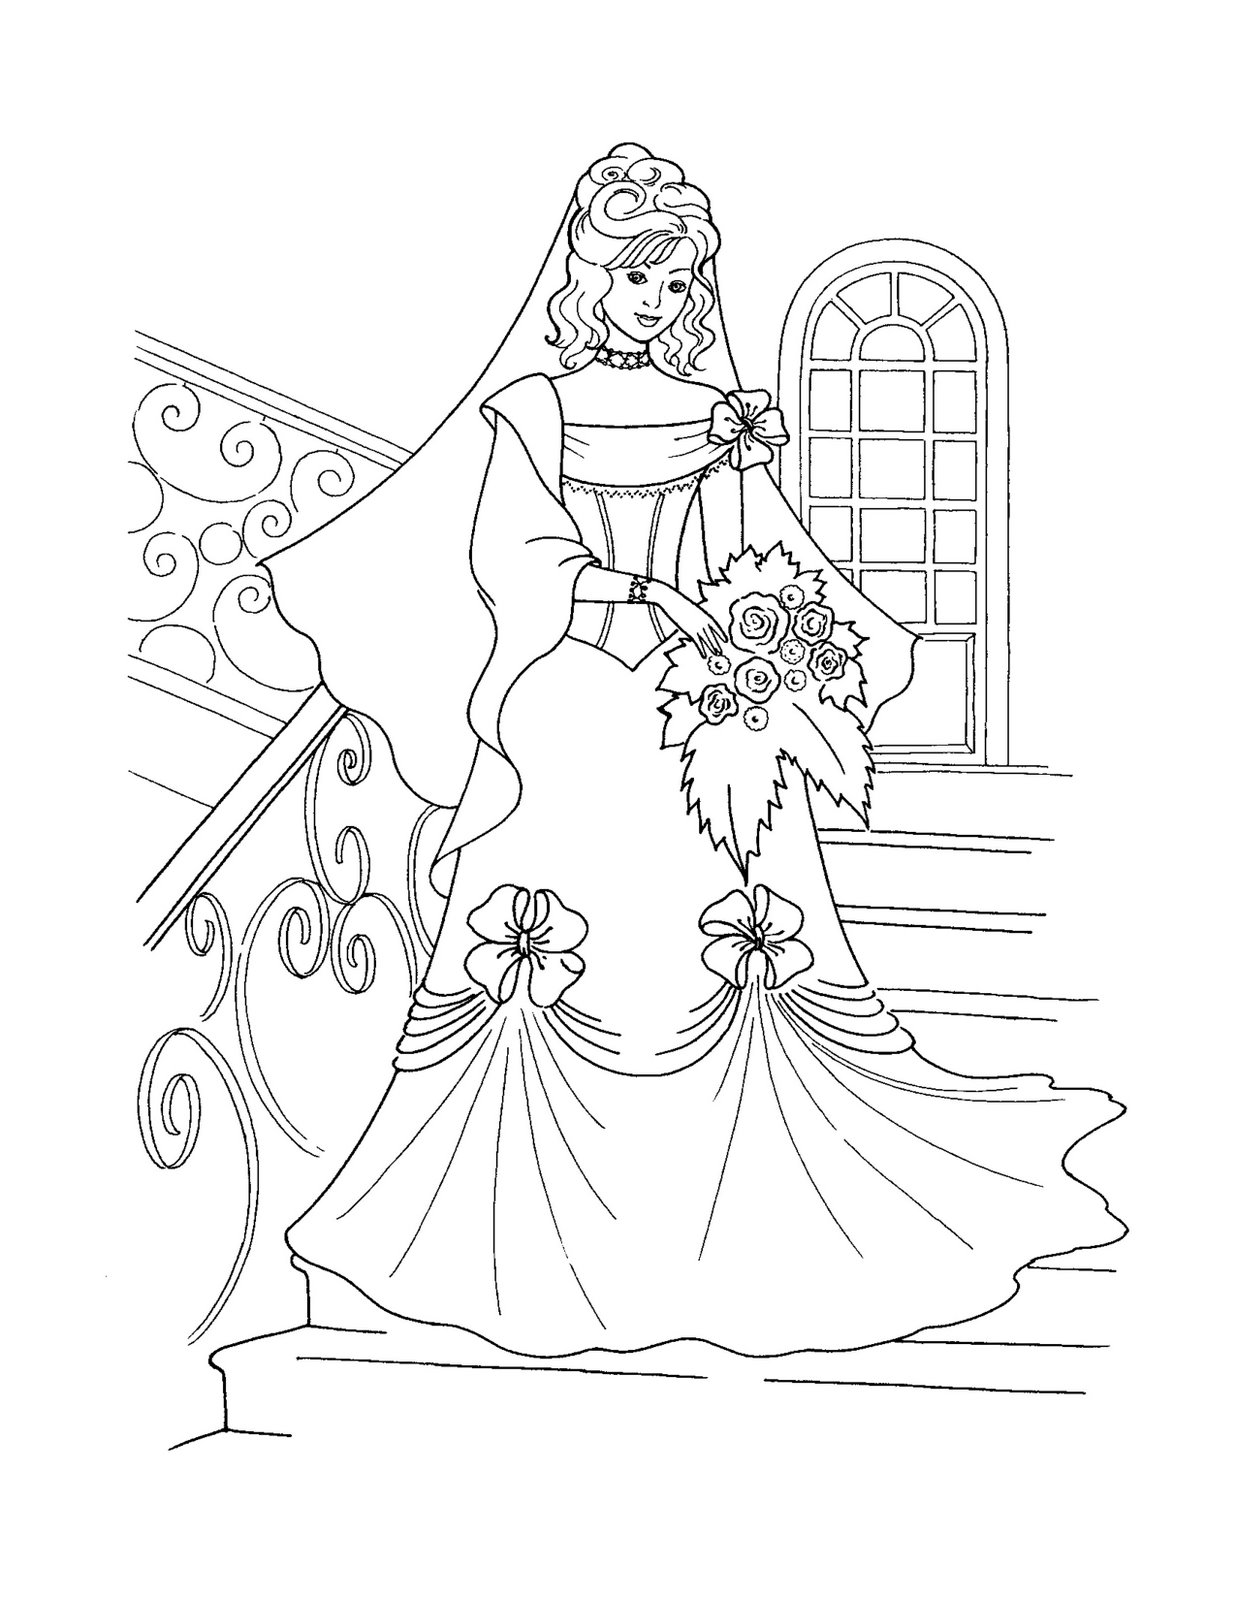 castles coloring pages - free printable disney princess coloring pages for kids